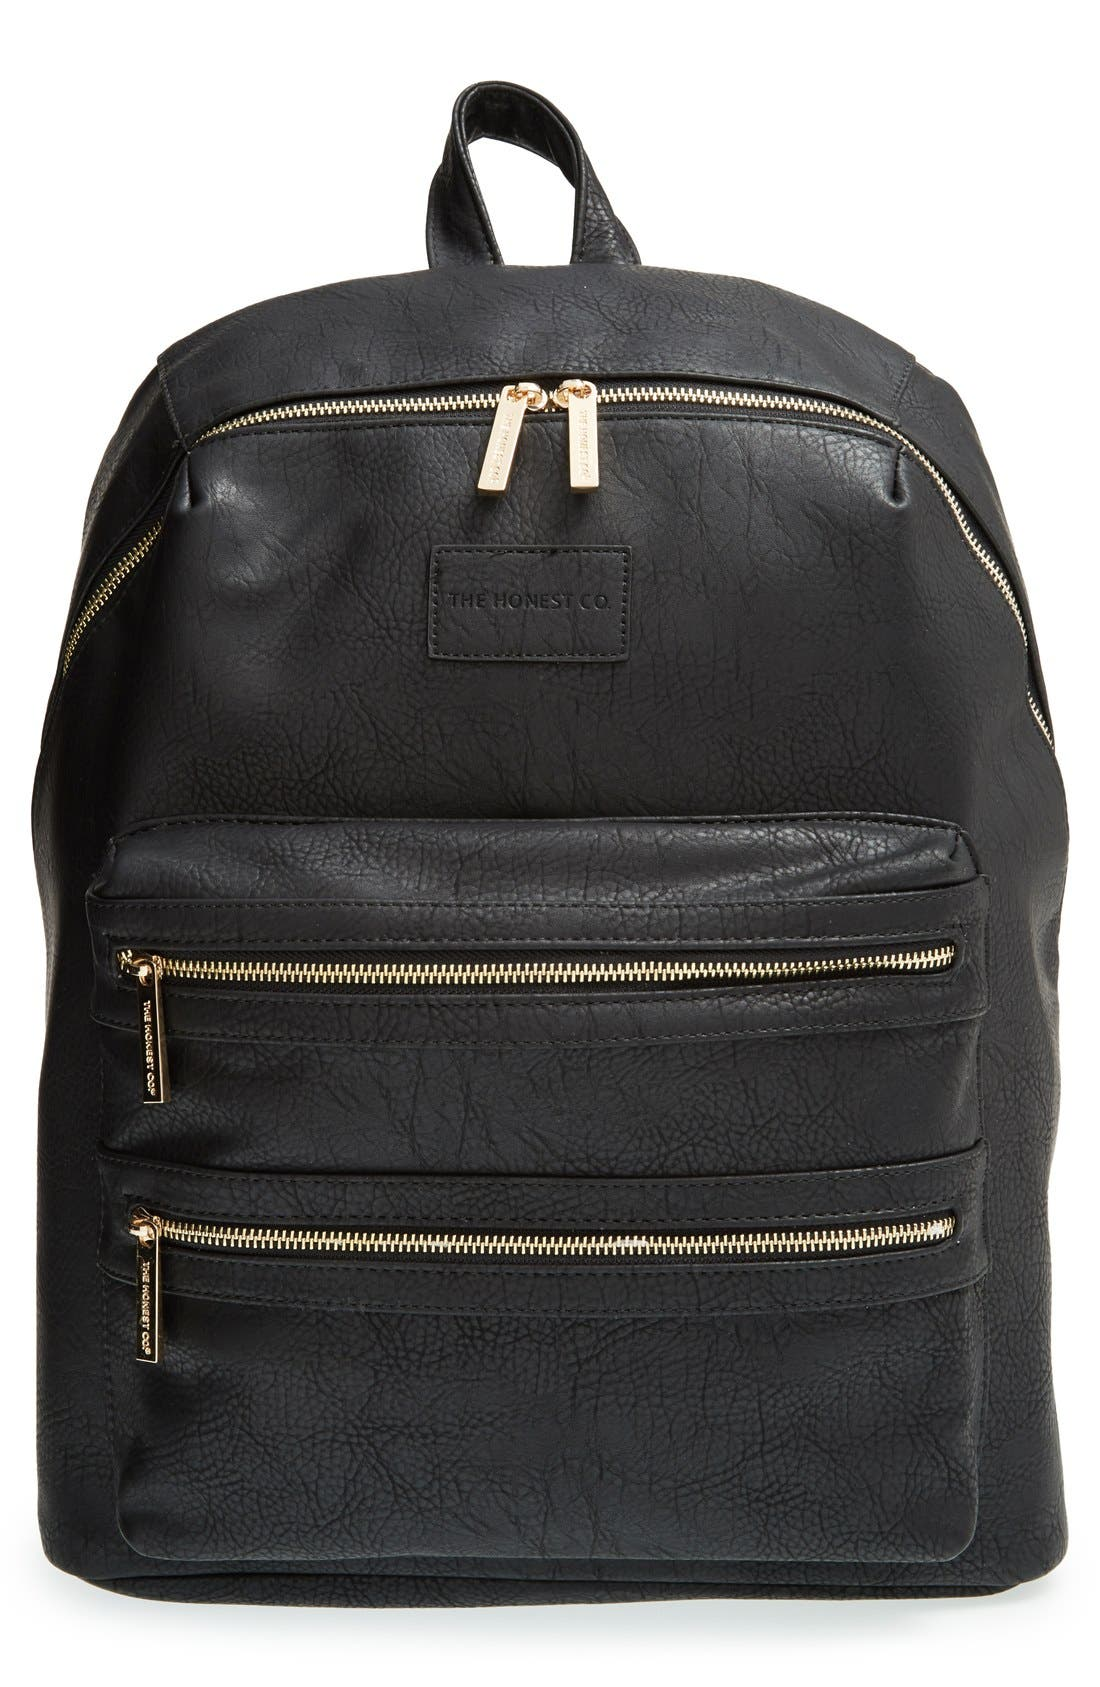 THE HONEST COMPANY, 'City' Faux Leather Diaper Backpack, Main thumbnail 1, color, BLACK